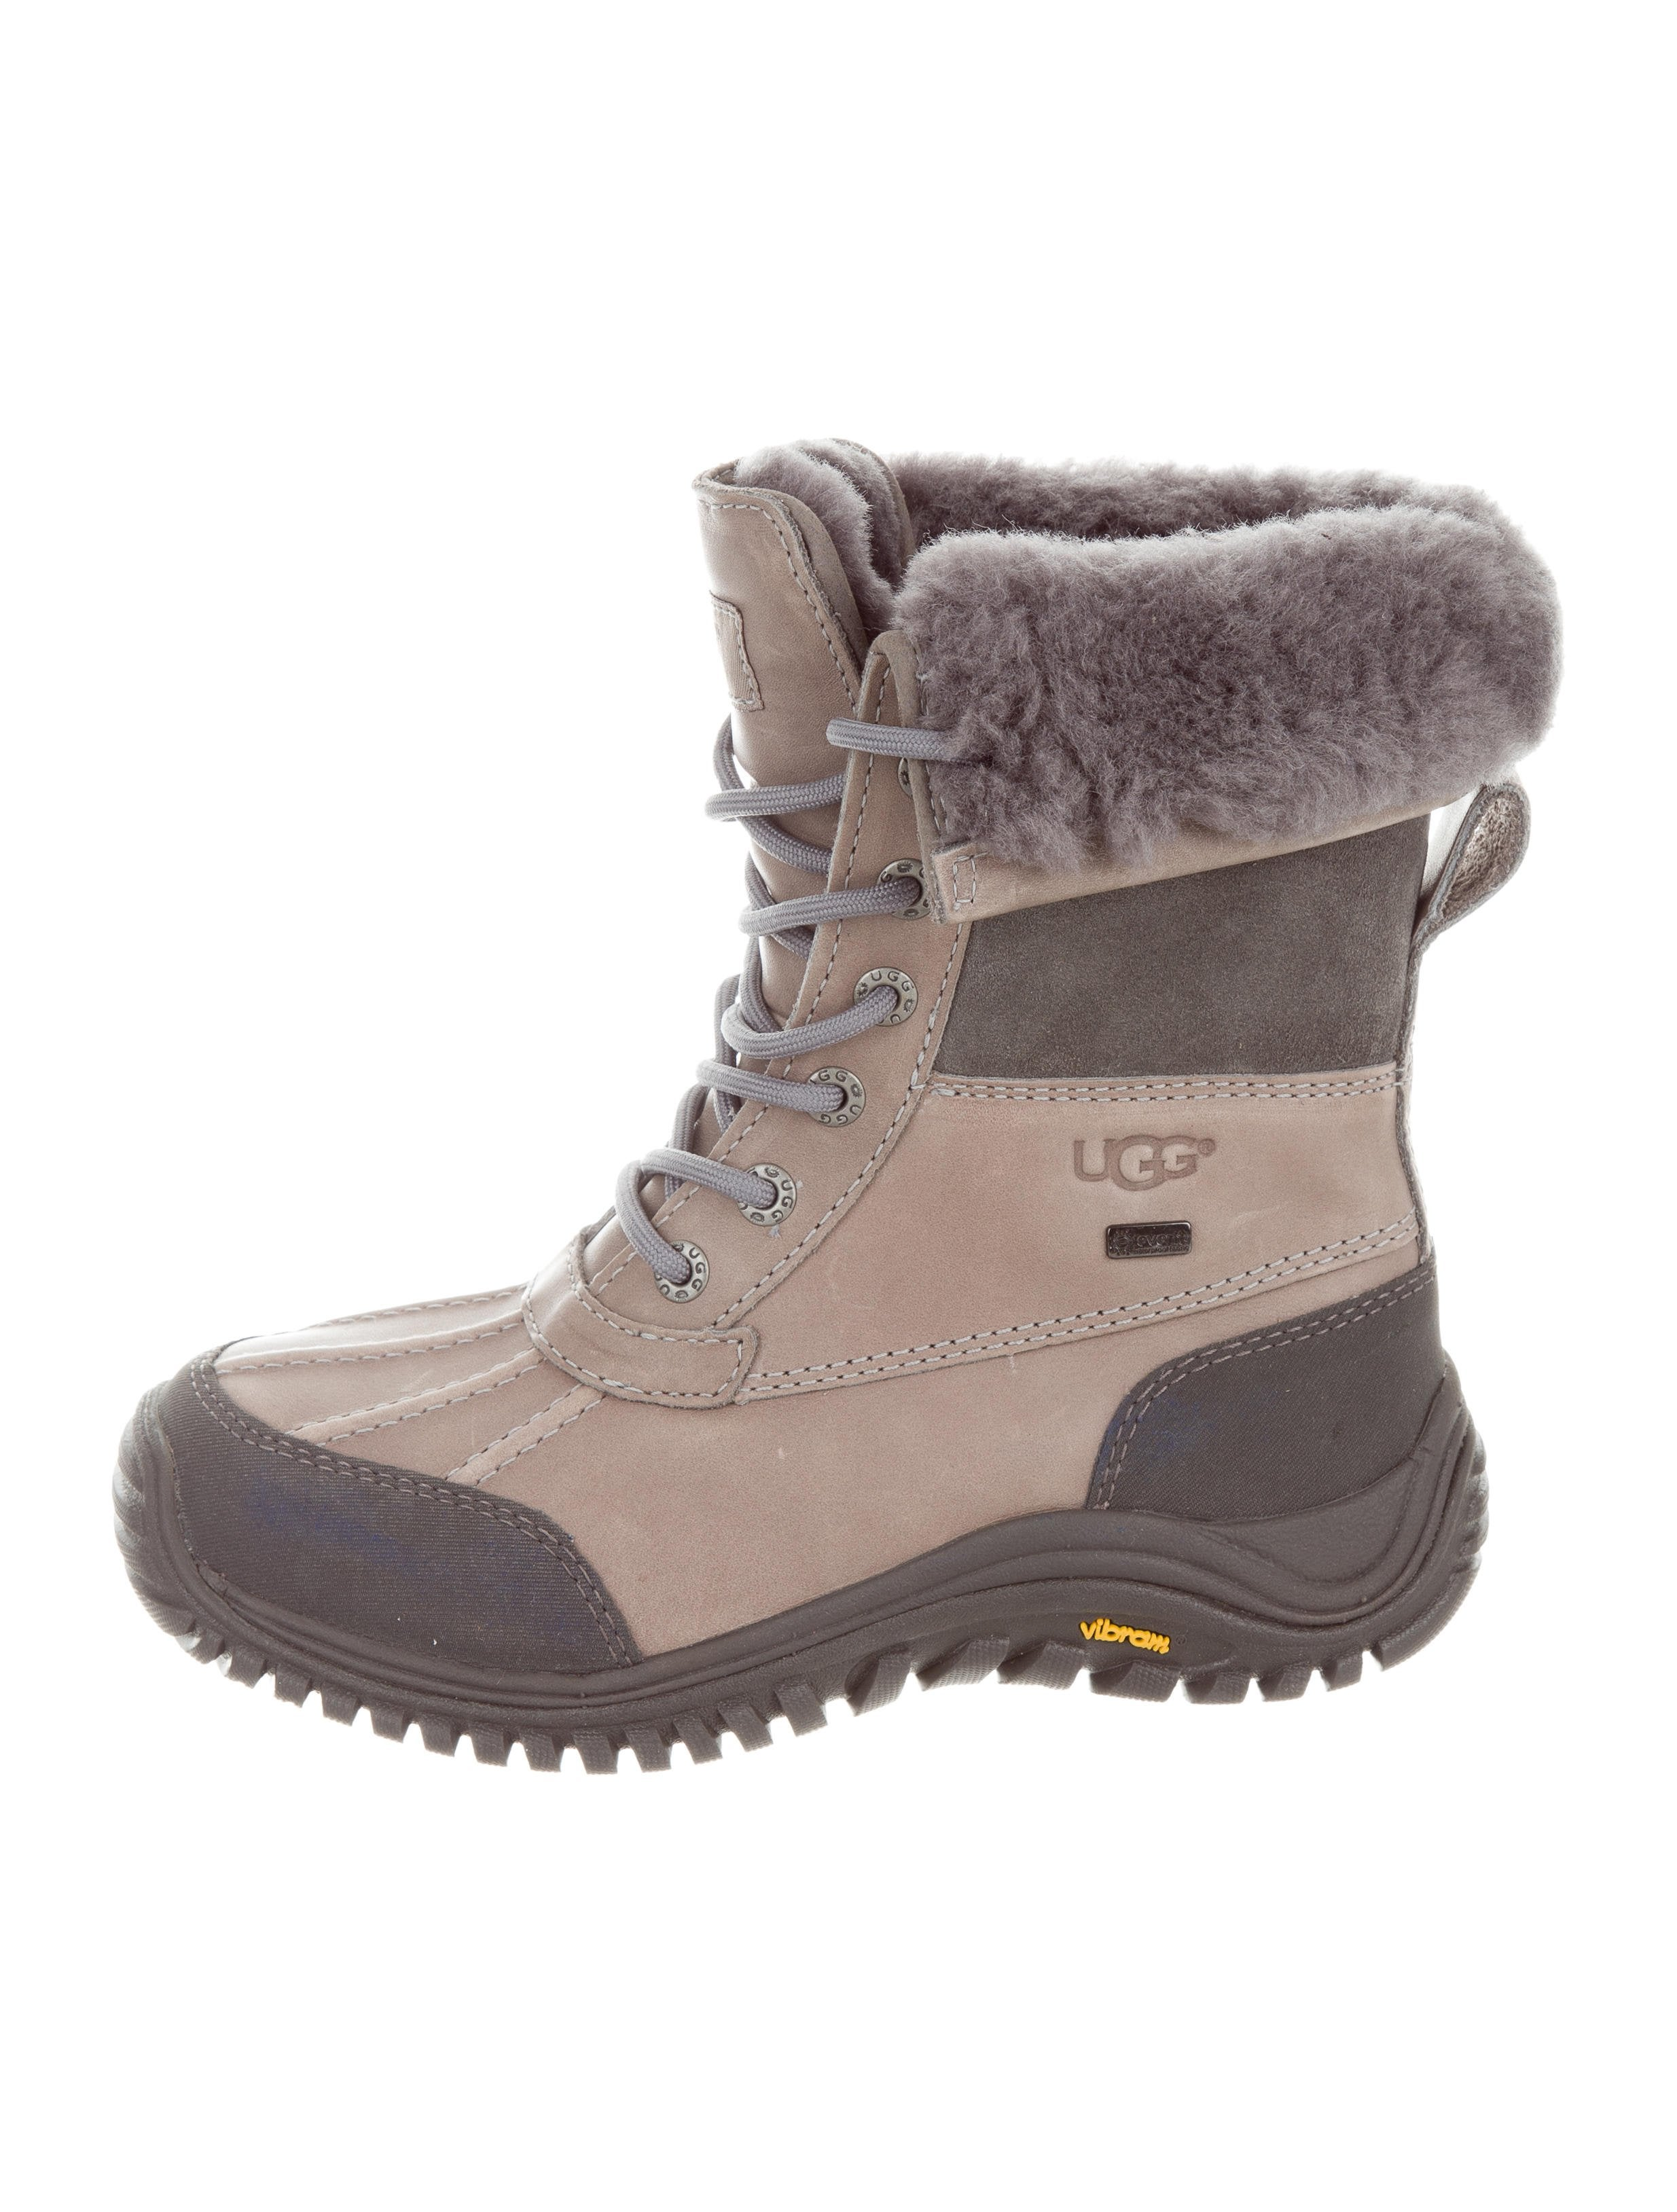 UGG Australia Shearling-Trimmed Ankle Boots shipping discount authentic discount how much clearance pick a best top quality sale online cheap amazon vafH3Kfcr